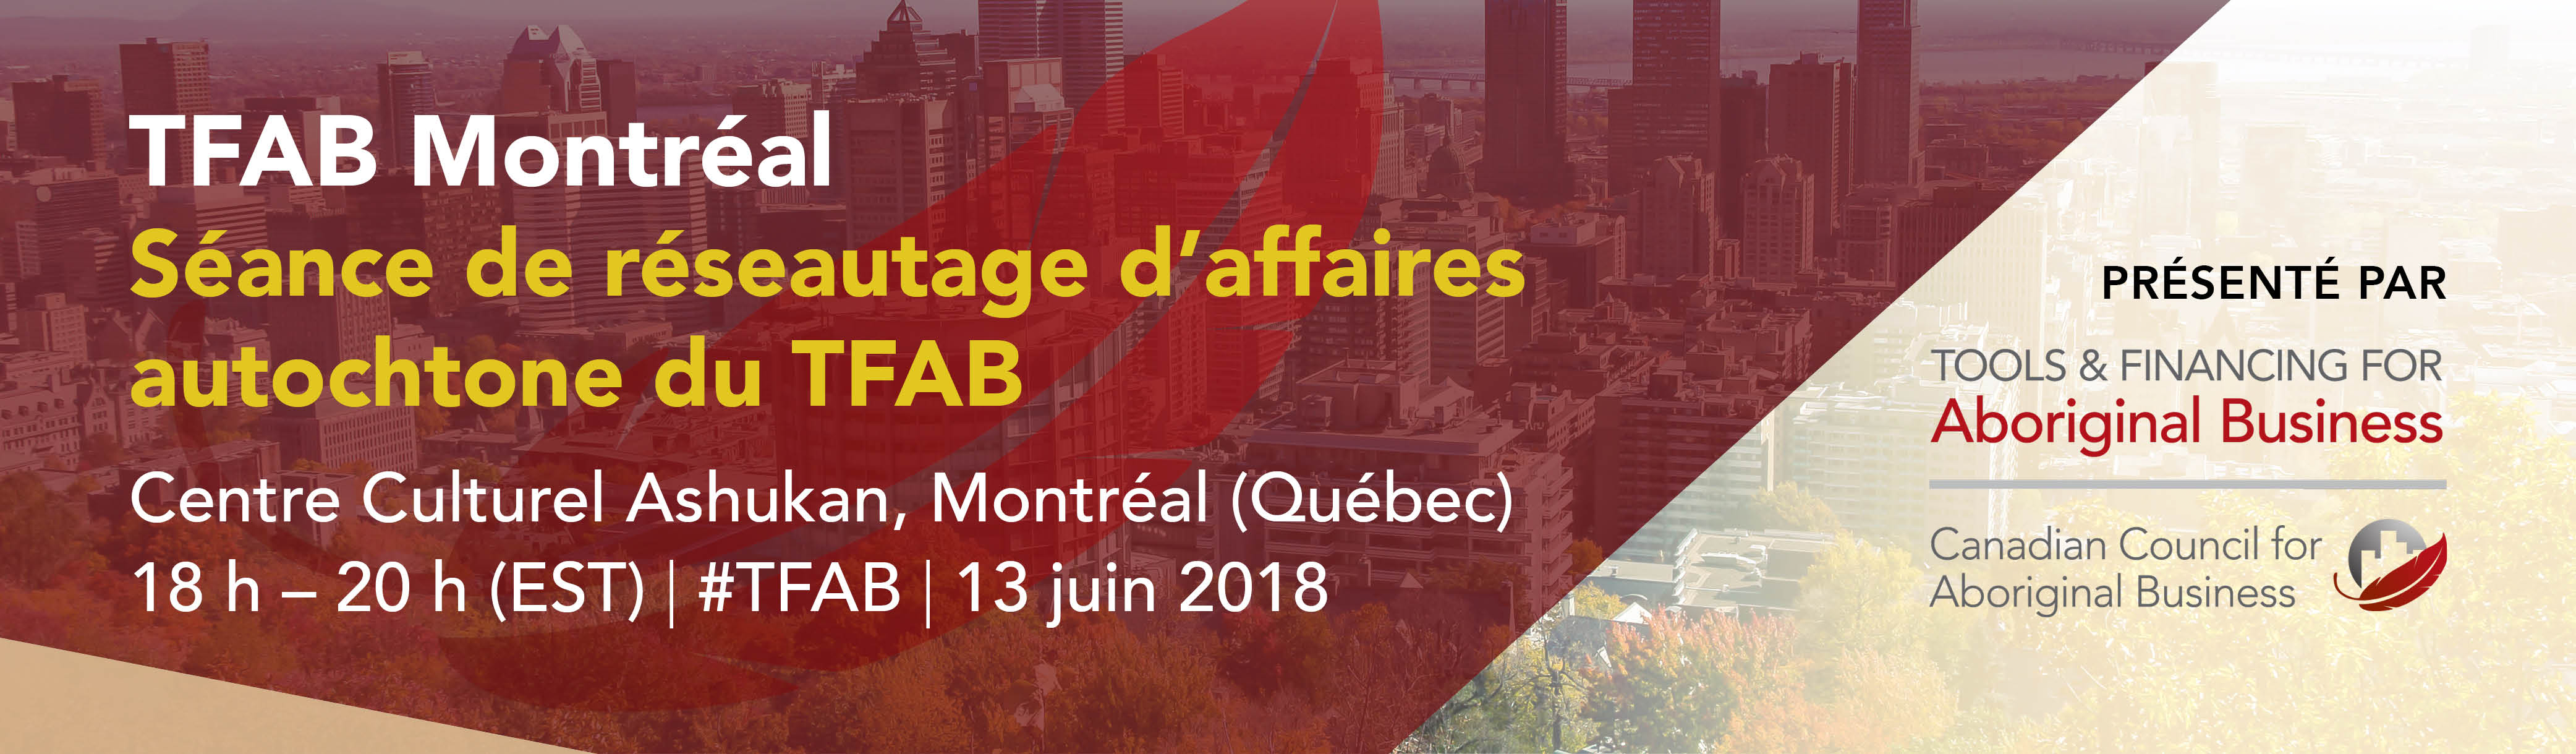 TFAB-Banner-Montreal-FR